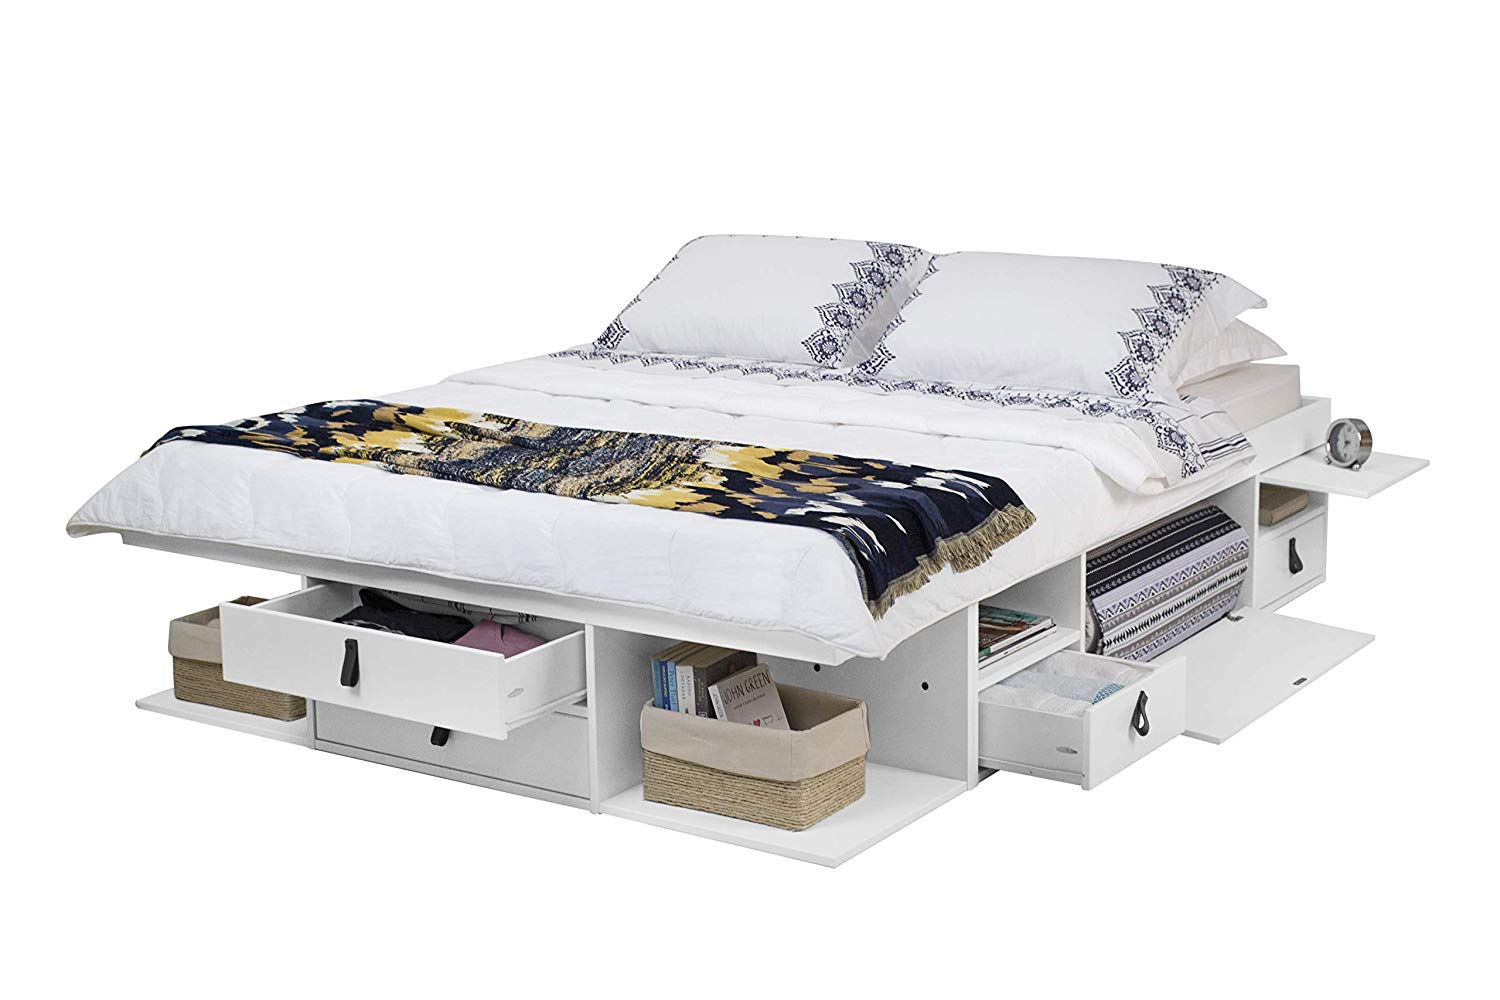 Memomad Bali Storage Platform Bed (Queen Size, Off White) - memomad.store